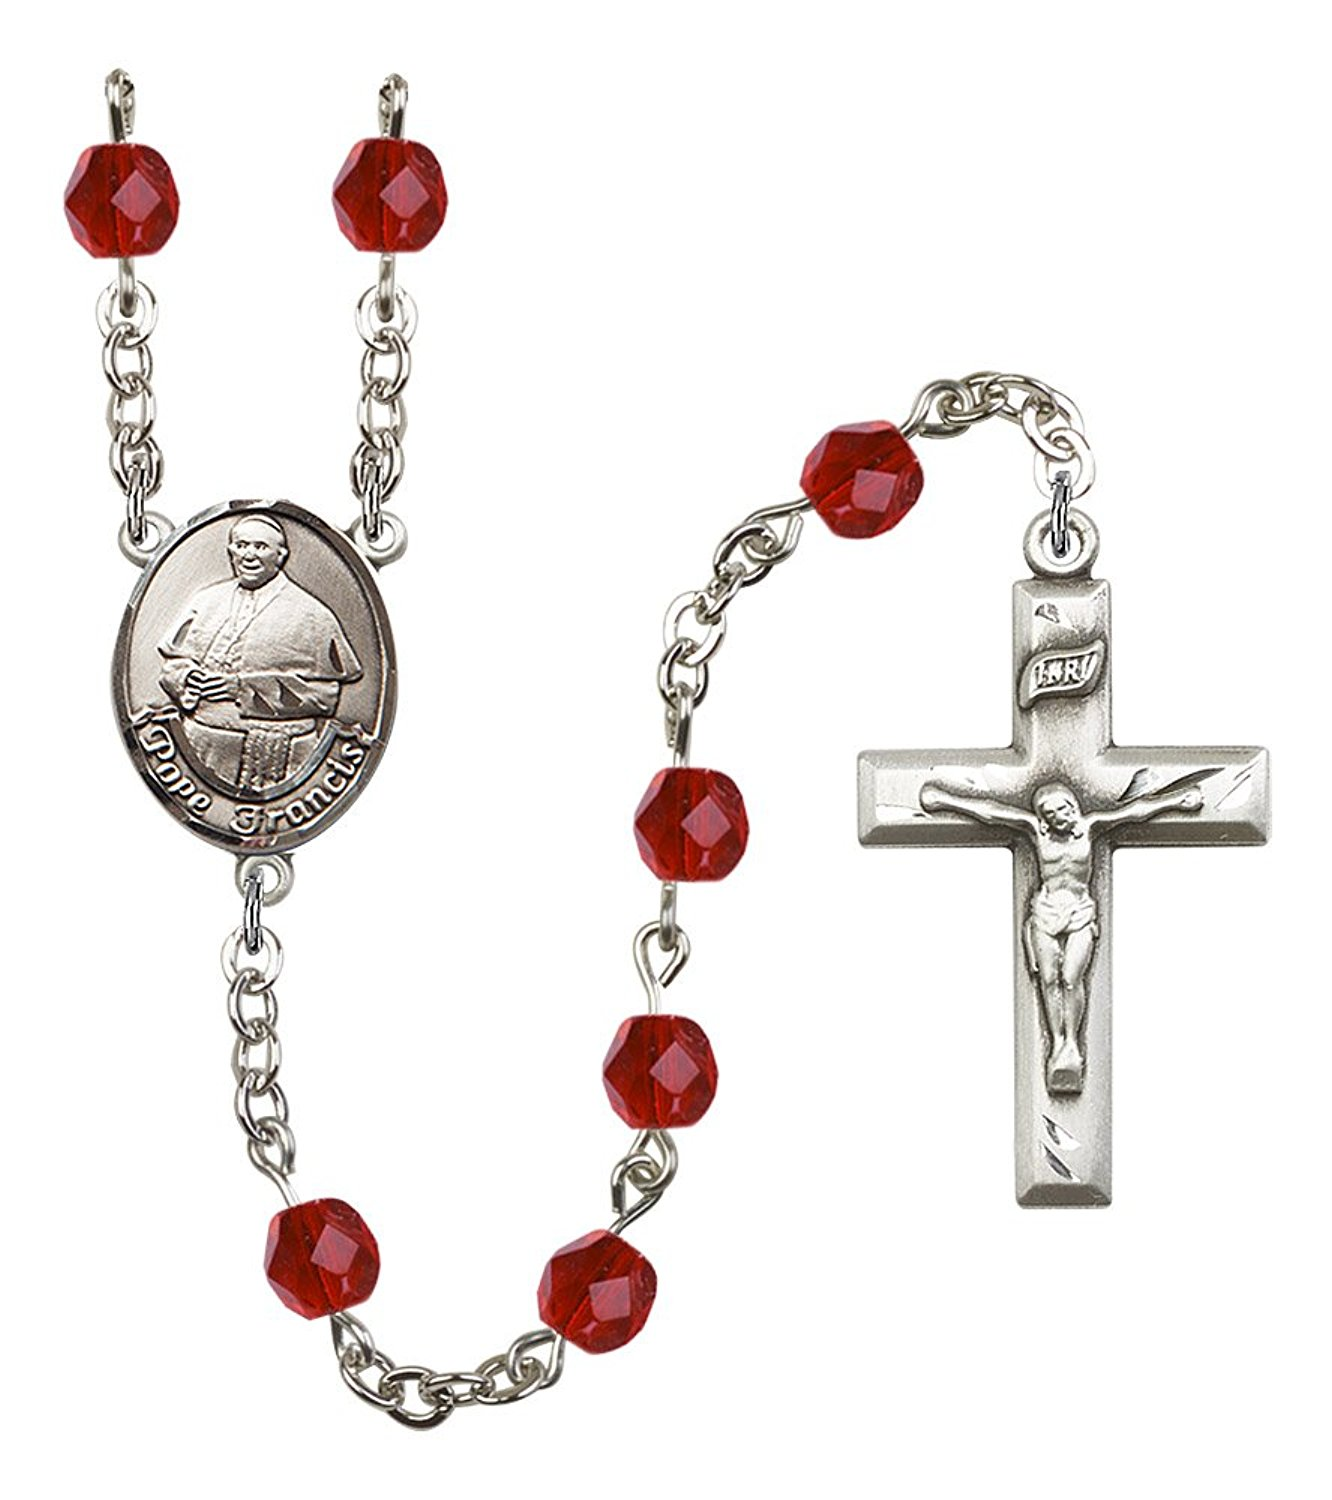 Silver Finish Pope Francis Rosary with 6mm Ruby Color Fire Polished Beads, Pope Francis Center, and 1 3/8 x 3/4 inch Crucifix, Gift Boxed